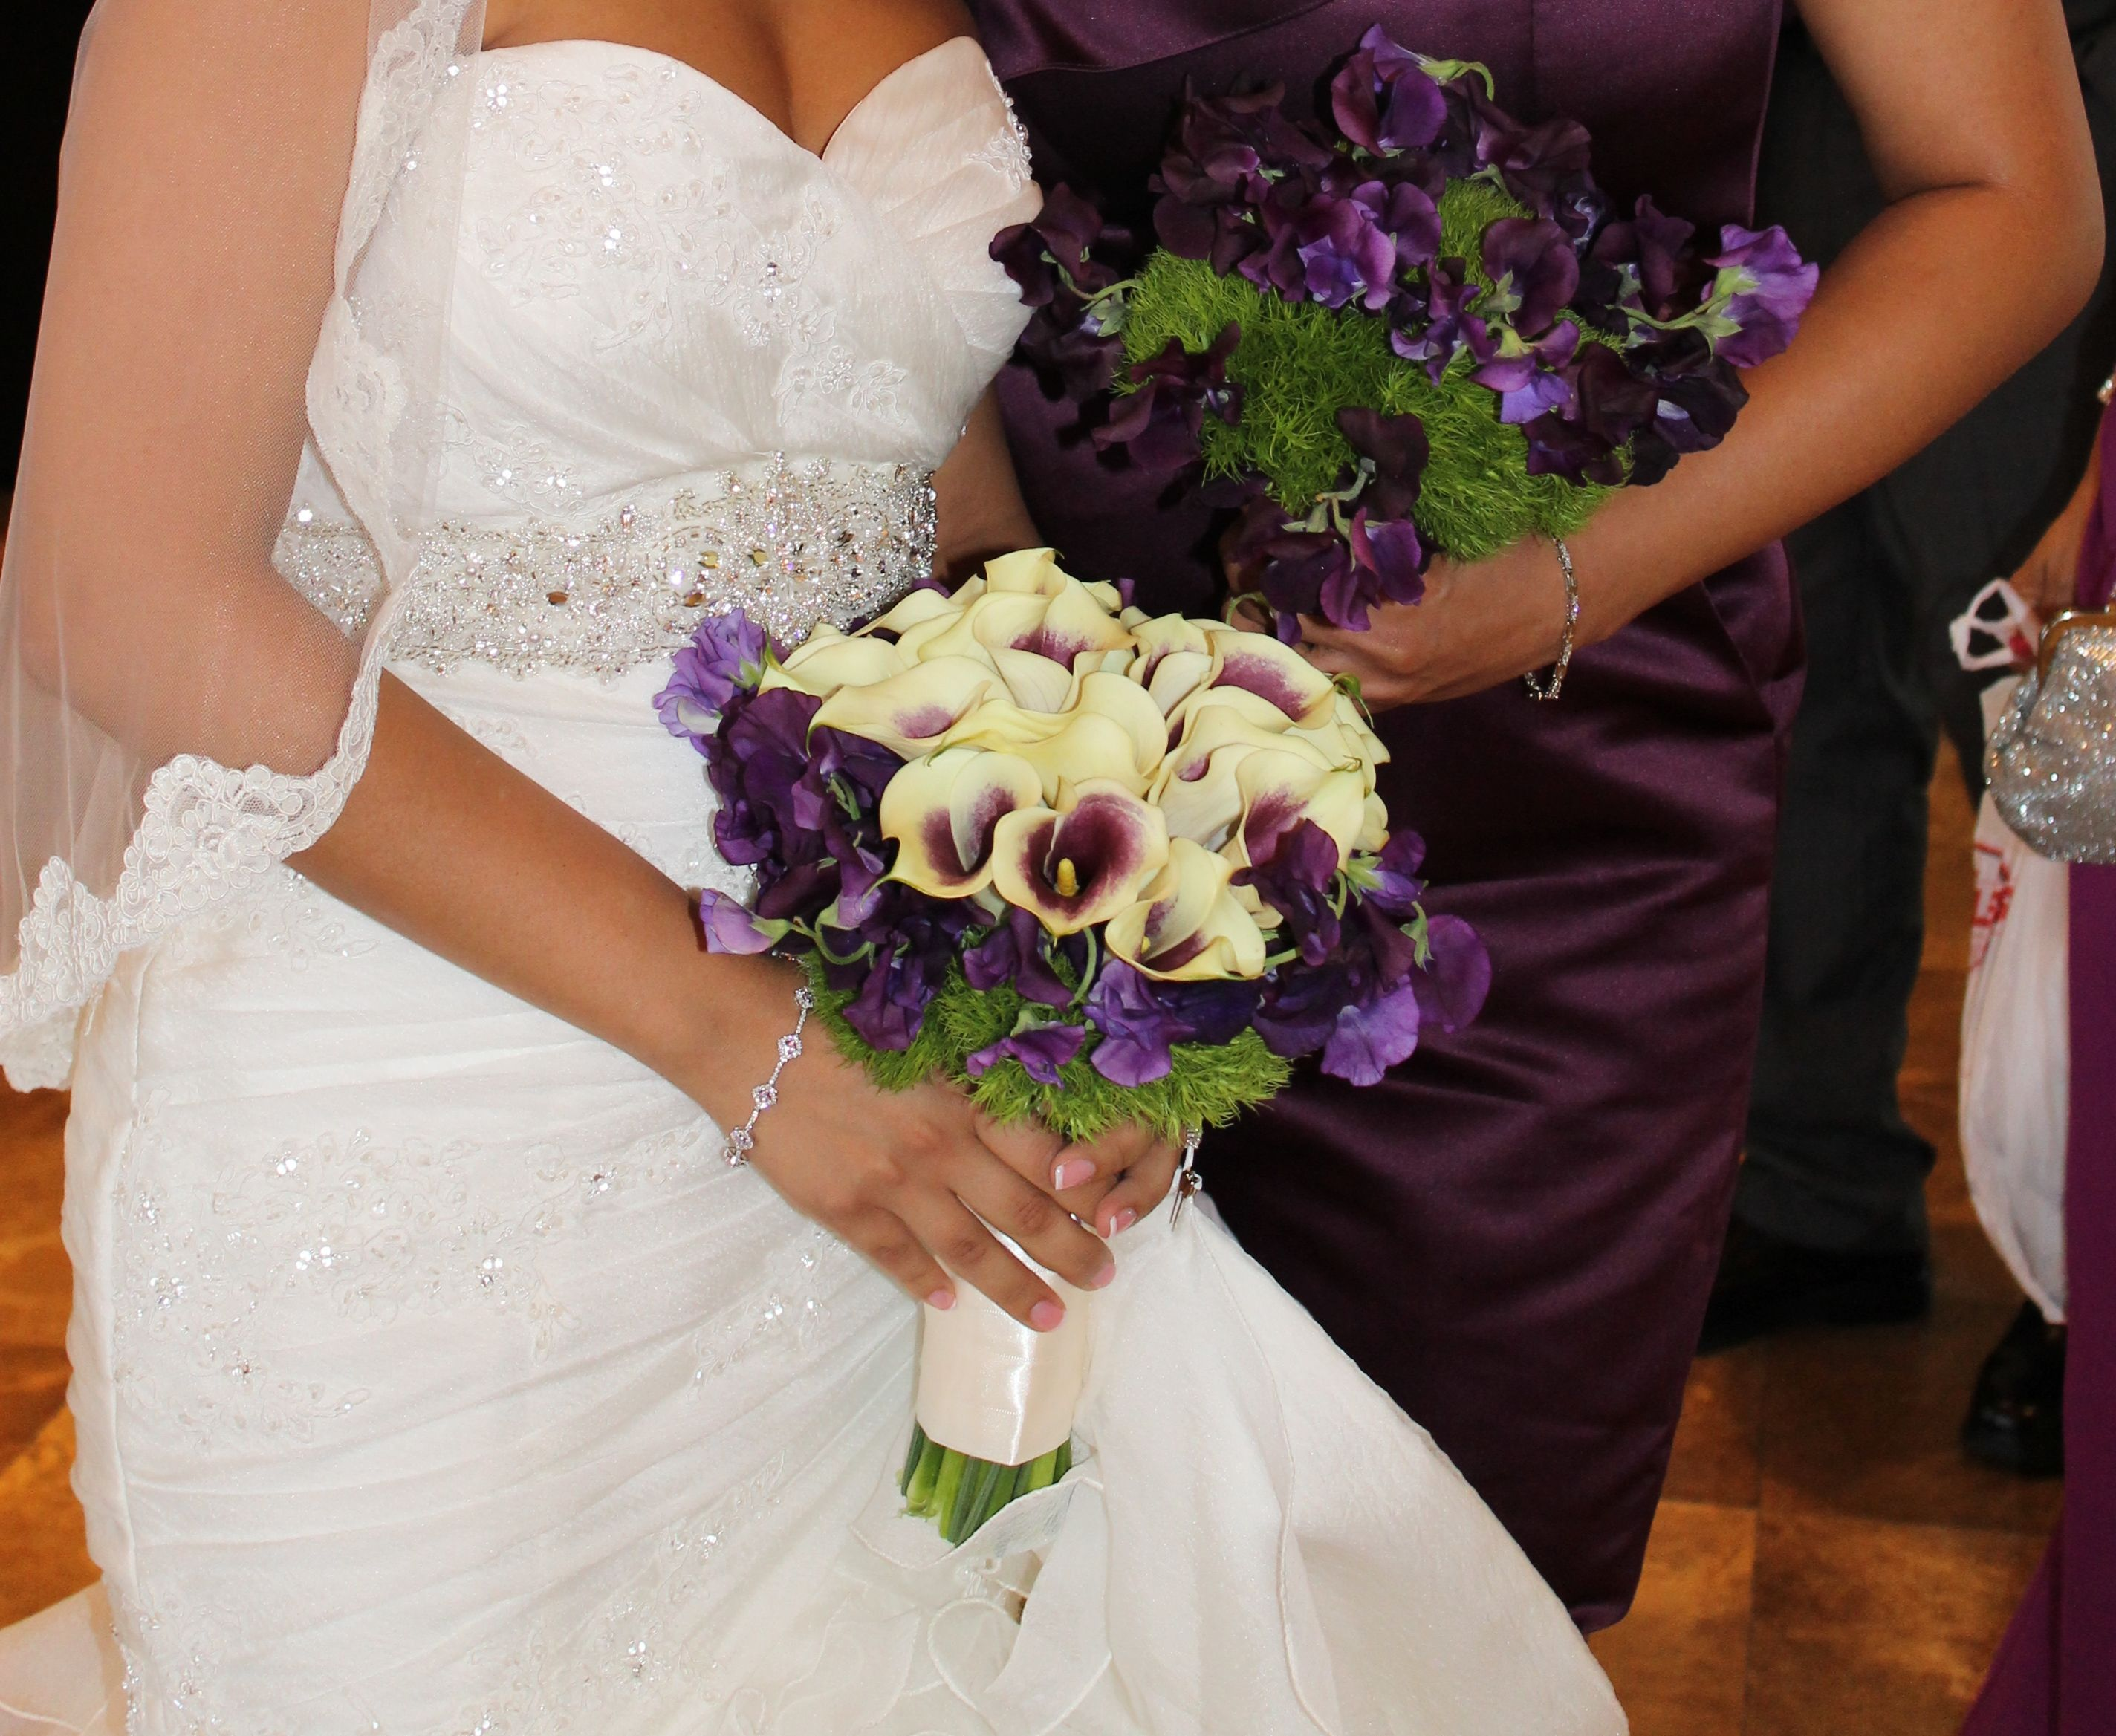 Picasso calla lily bridal bouquet with purple and lavender sweet picasso calla lily bridal bouquet with purple and lavender sweet pea and dianthus bridesmaid bouquet dhlflorist Choice Image